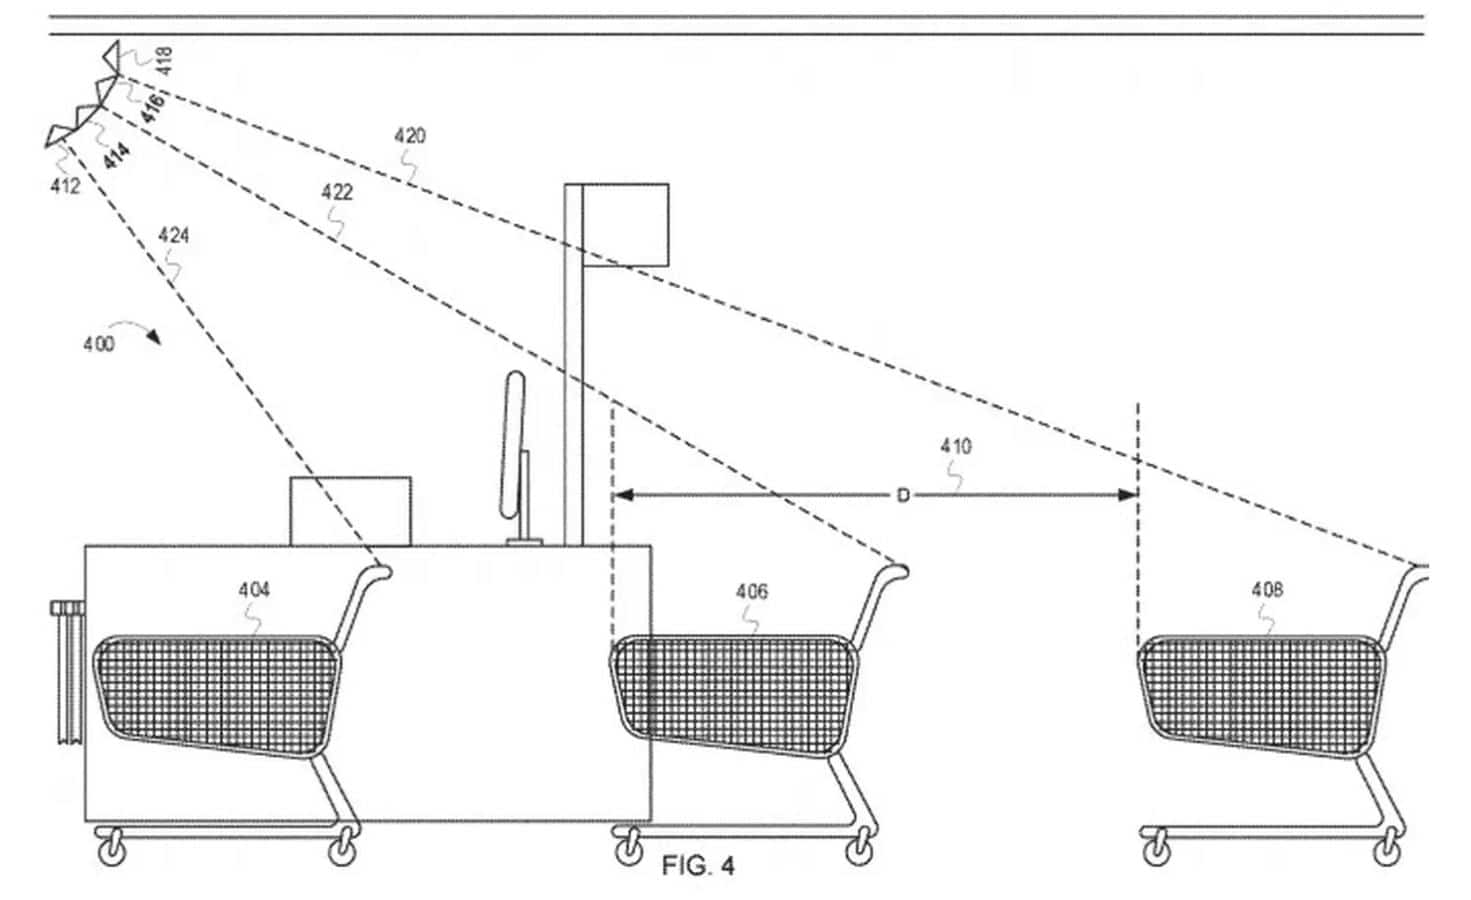 walmart patent showing that i can listen in to employees and customers